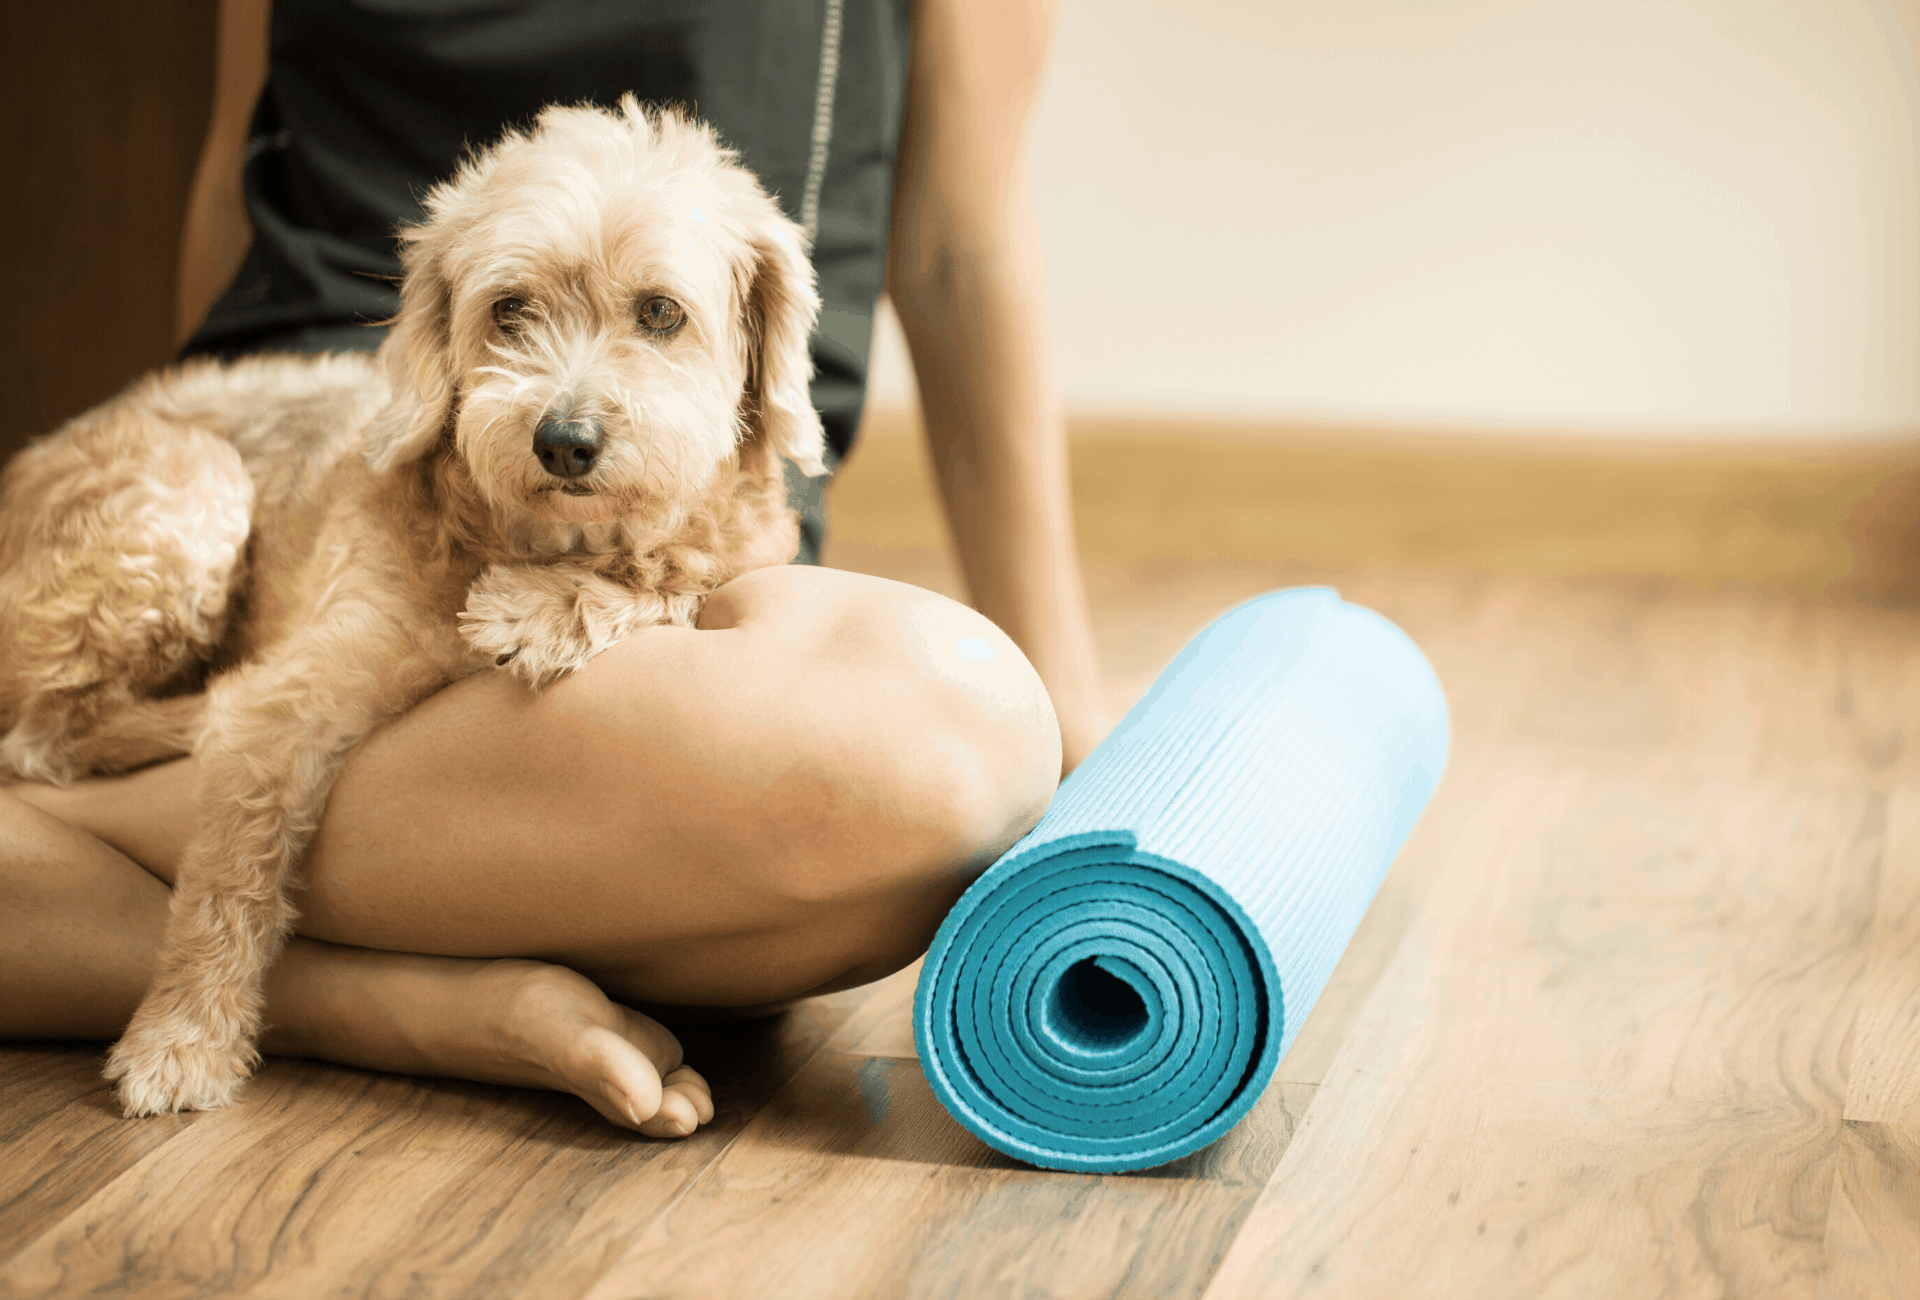 Dog sitting on the lap of his owner during dog yoga class.